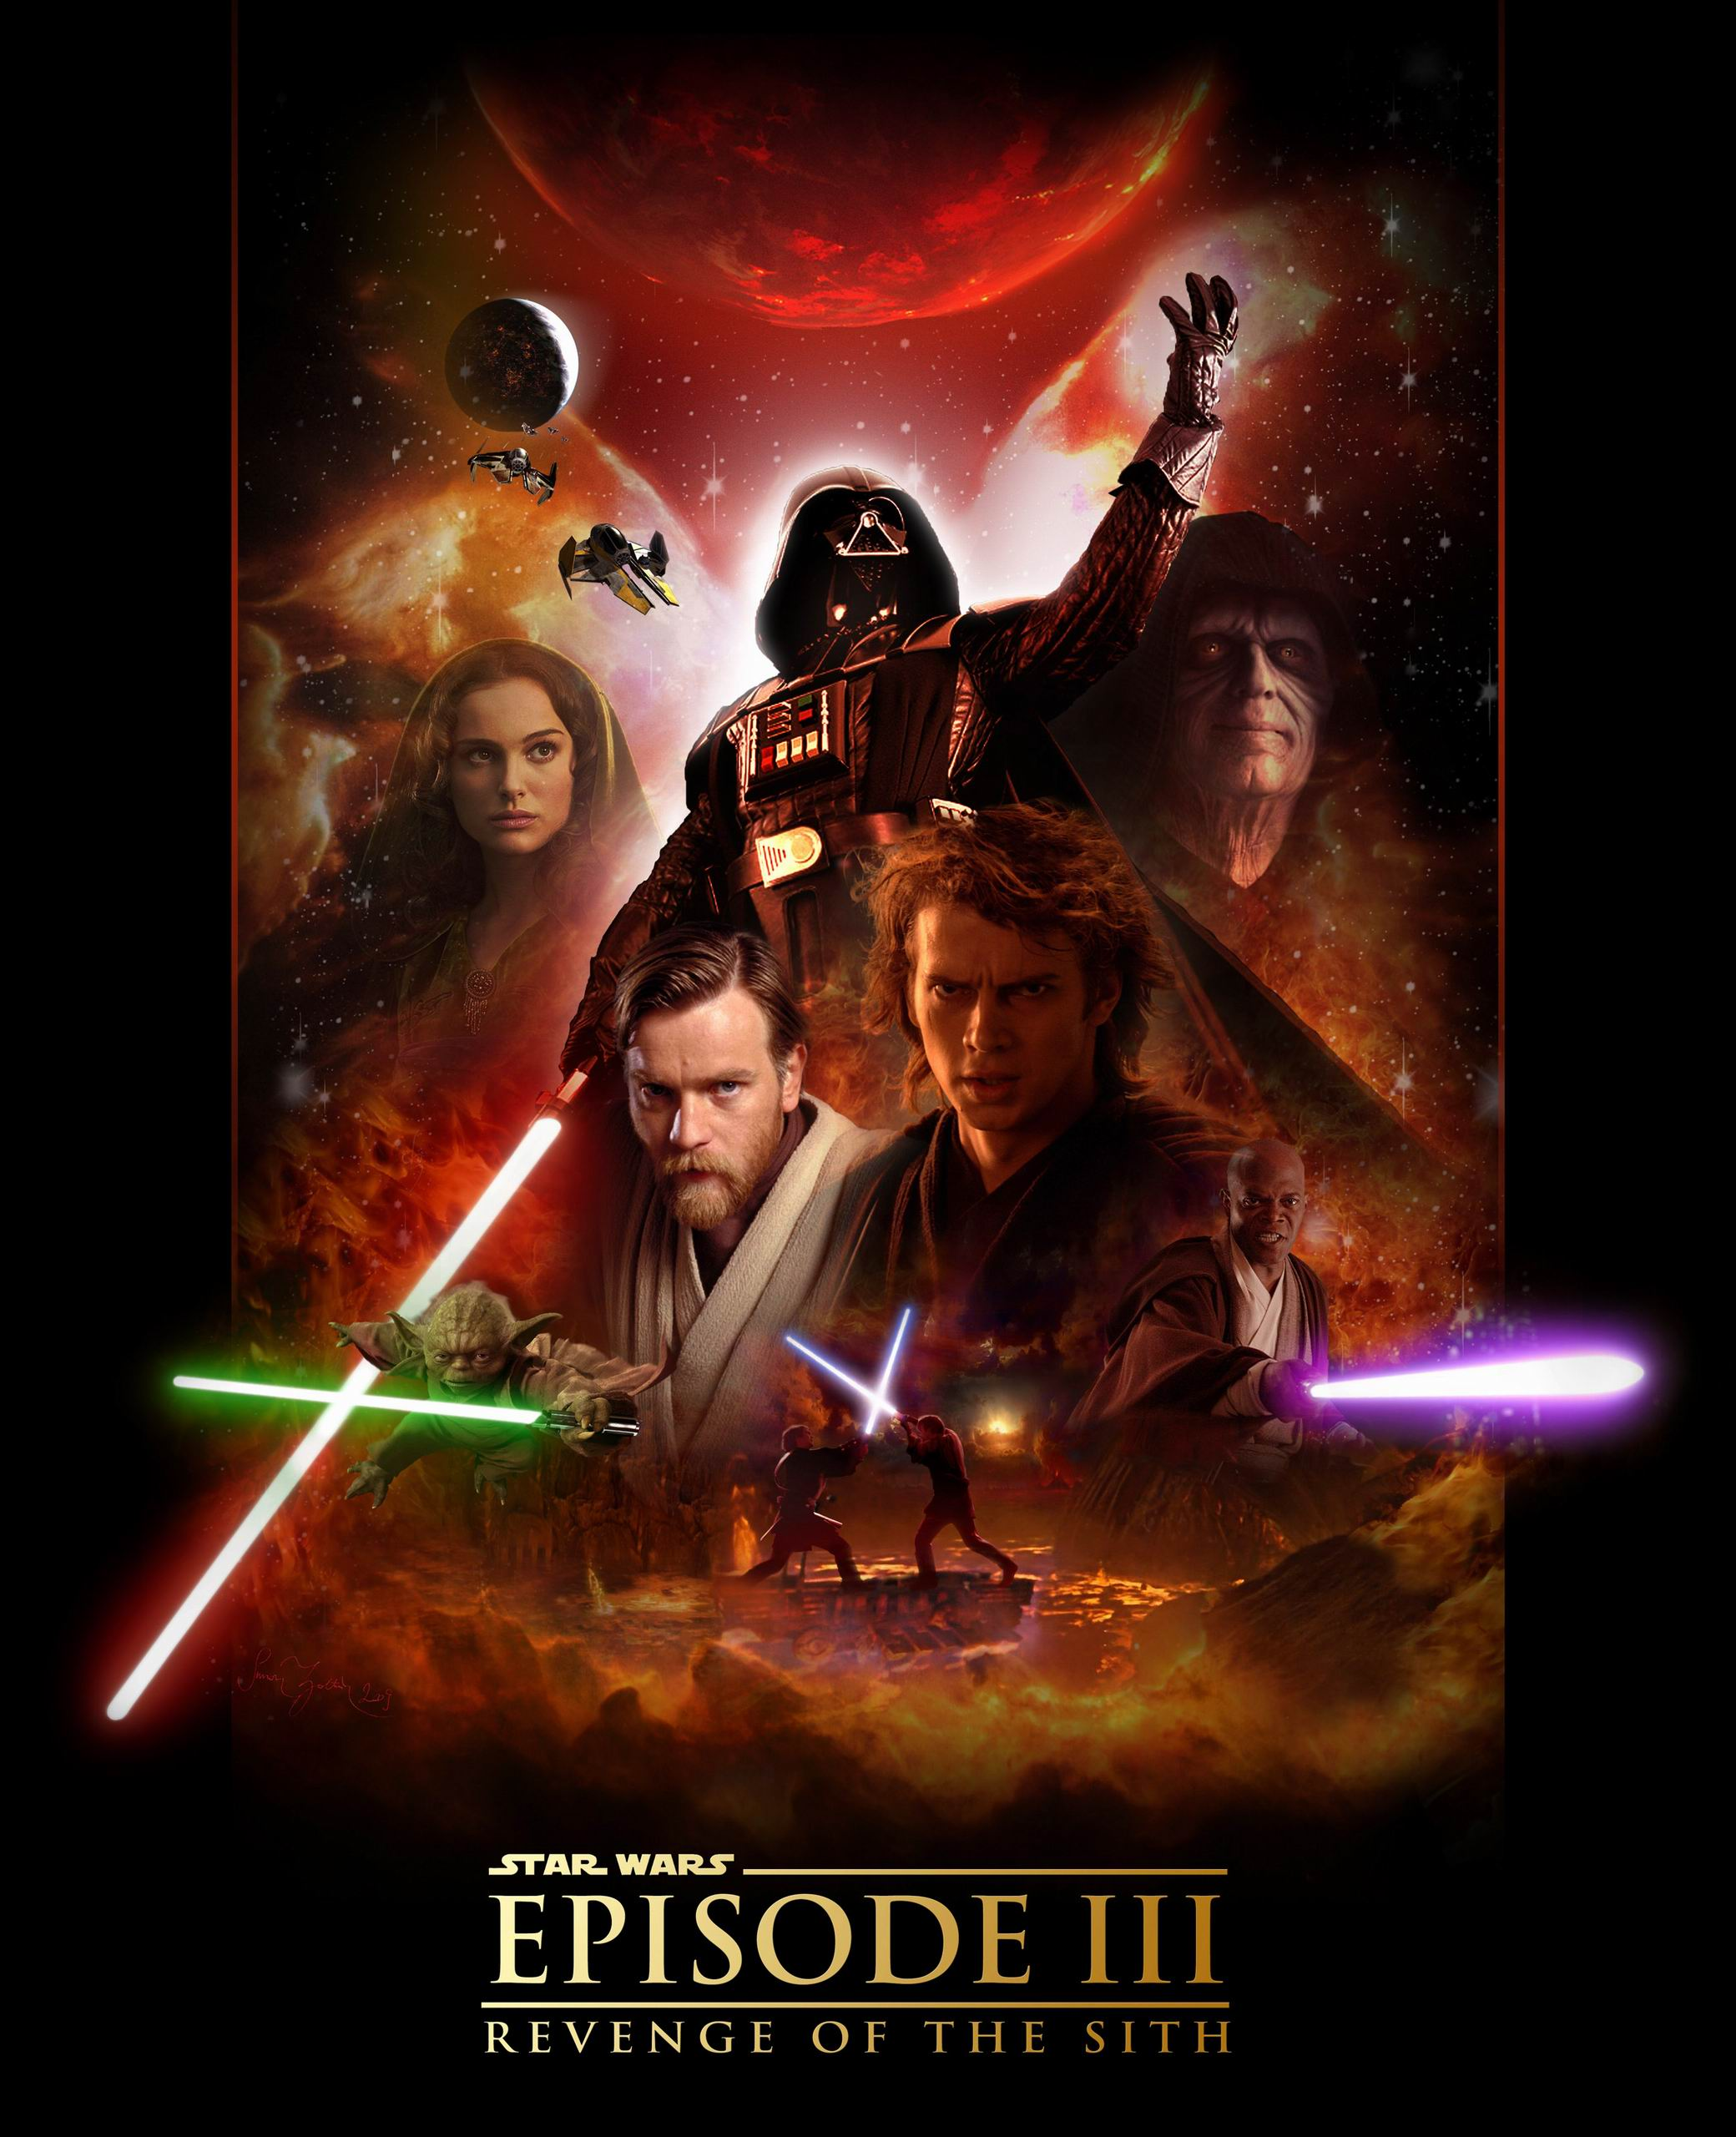 Free Download Star Wars Episode Iii Revenge Of The Sith 2080x2560 For Your Desktop Mobile Tablet Explore 49 Star Wars Movie Poster Wallpaper Star Wars Animated Wallpaper Star Wars